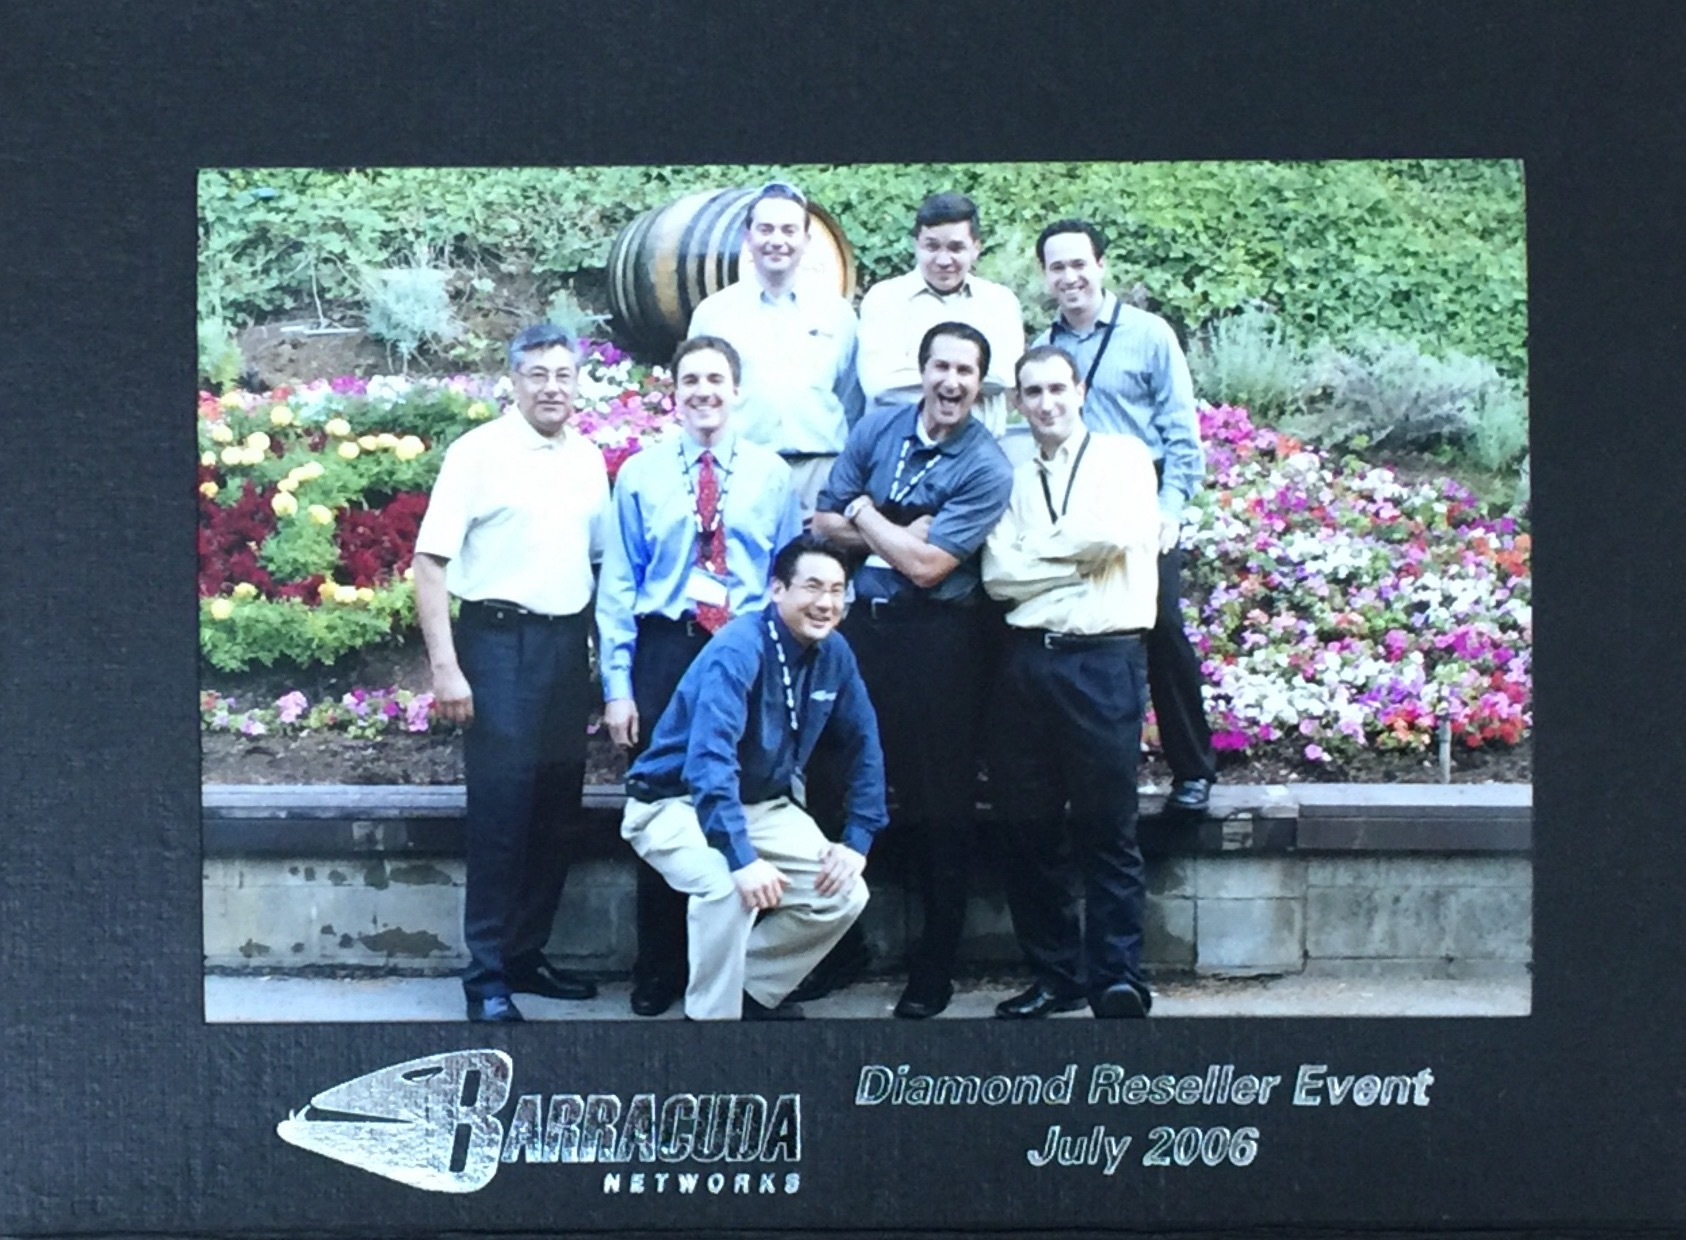 2006 Diamond Reseller Event